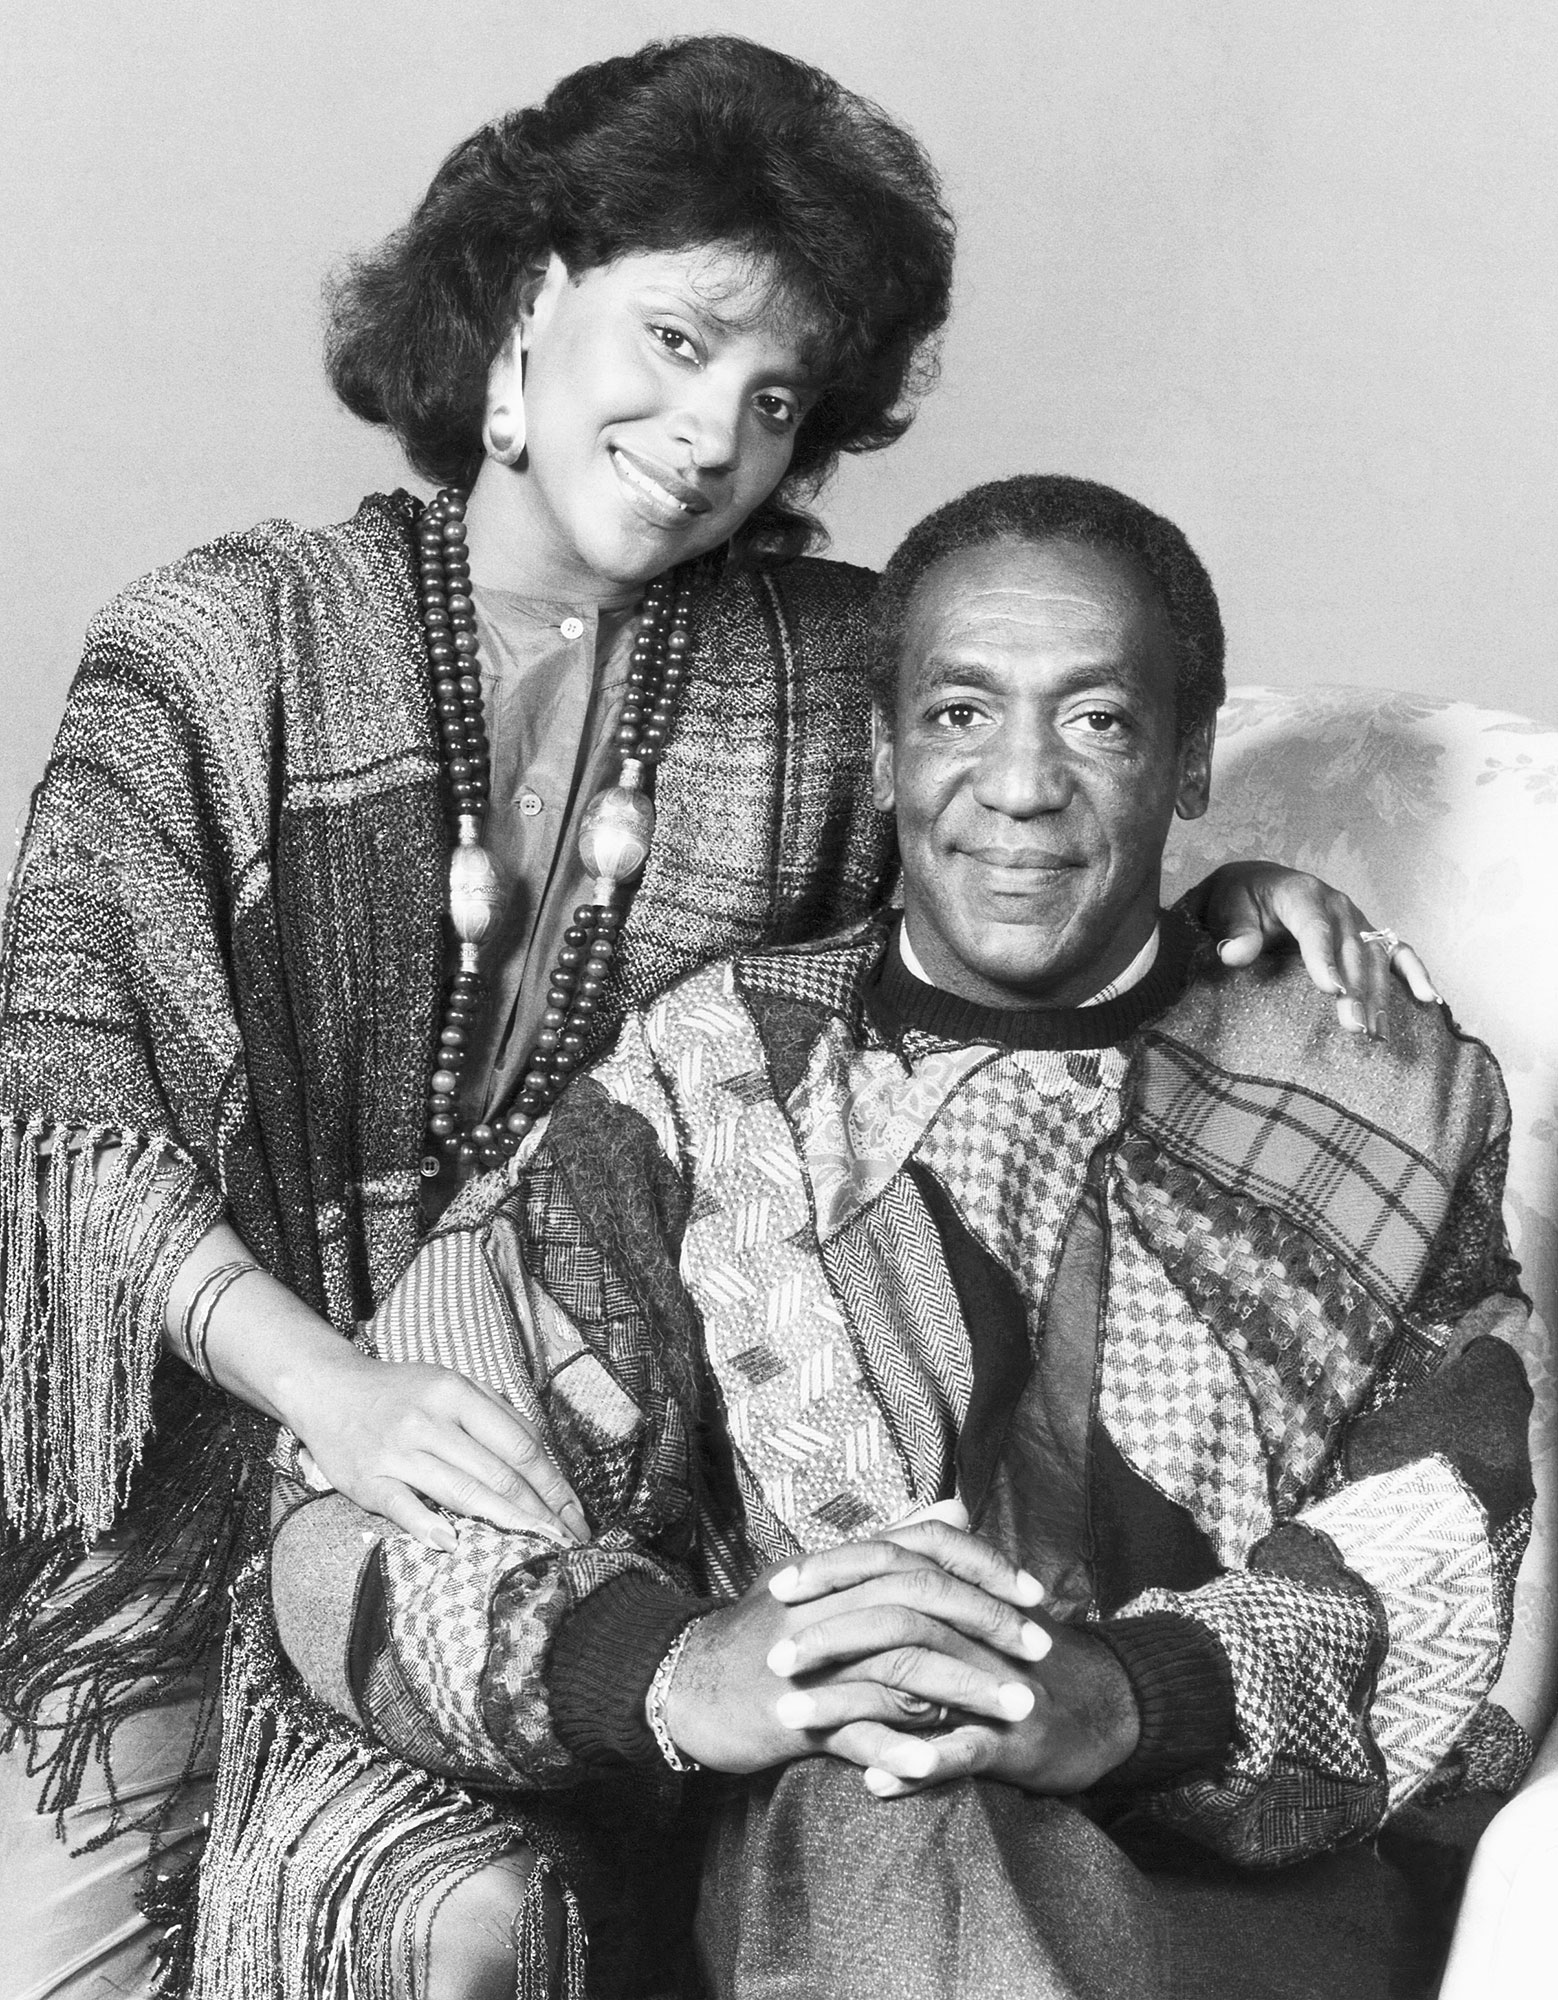 Best TV Couples The Cosby Show Phylicia Rashad - Show: The Cosby Show Actors: Bill Cosby and Phylicia Rashad Network: NBC Seasons: 8